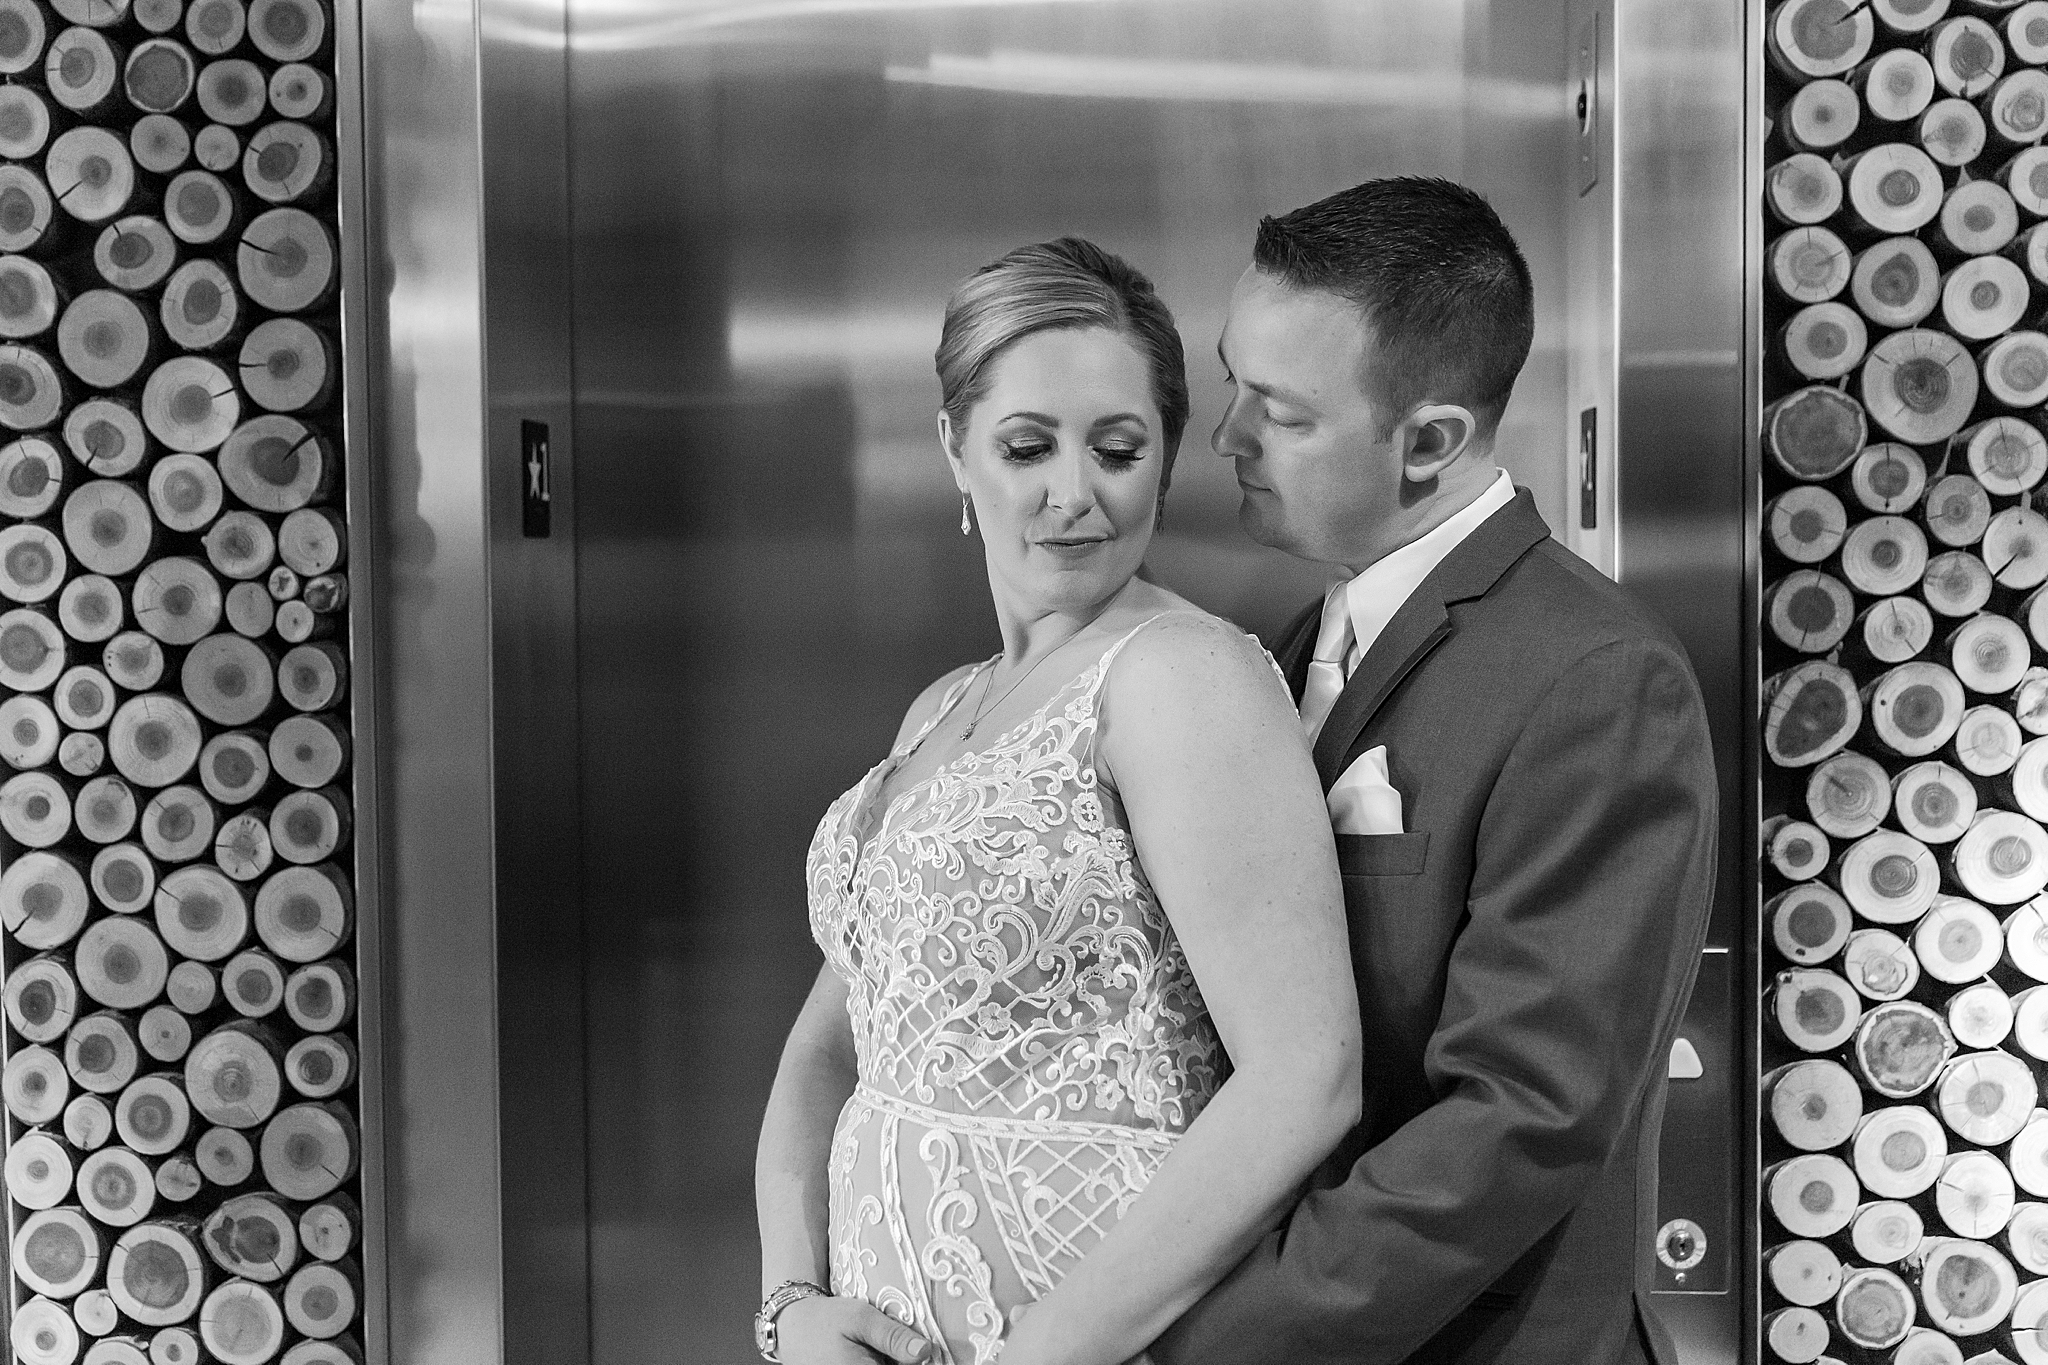 modern-romantic-wedding-photography-at-webers-in-ann-arbor-michigan-by-courtney-carolyn-photography_0044.jpg